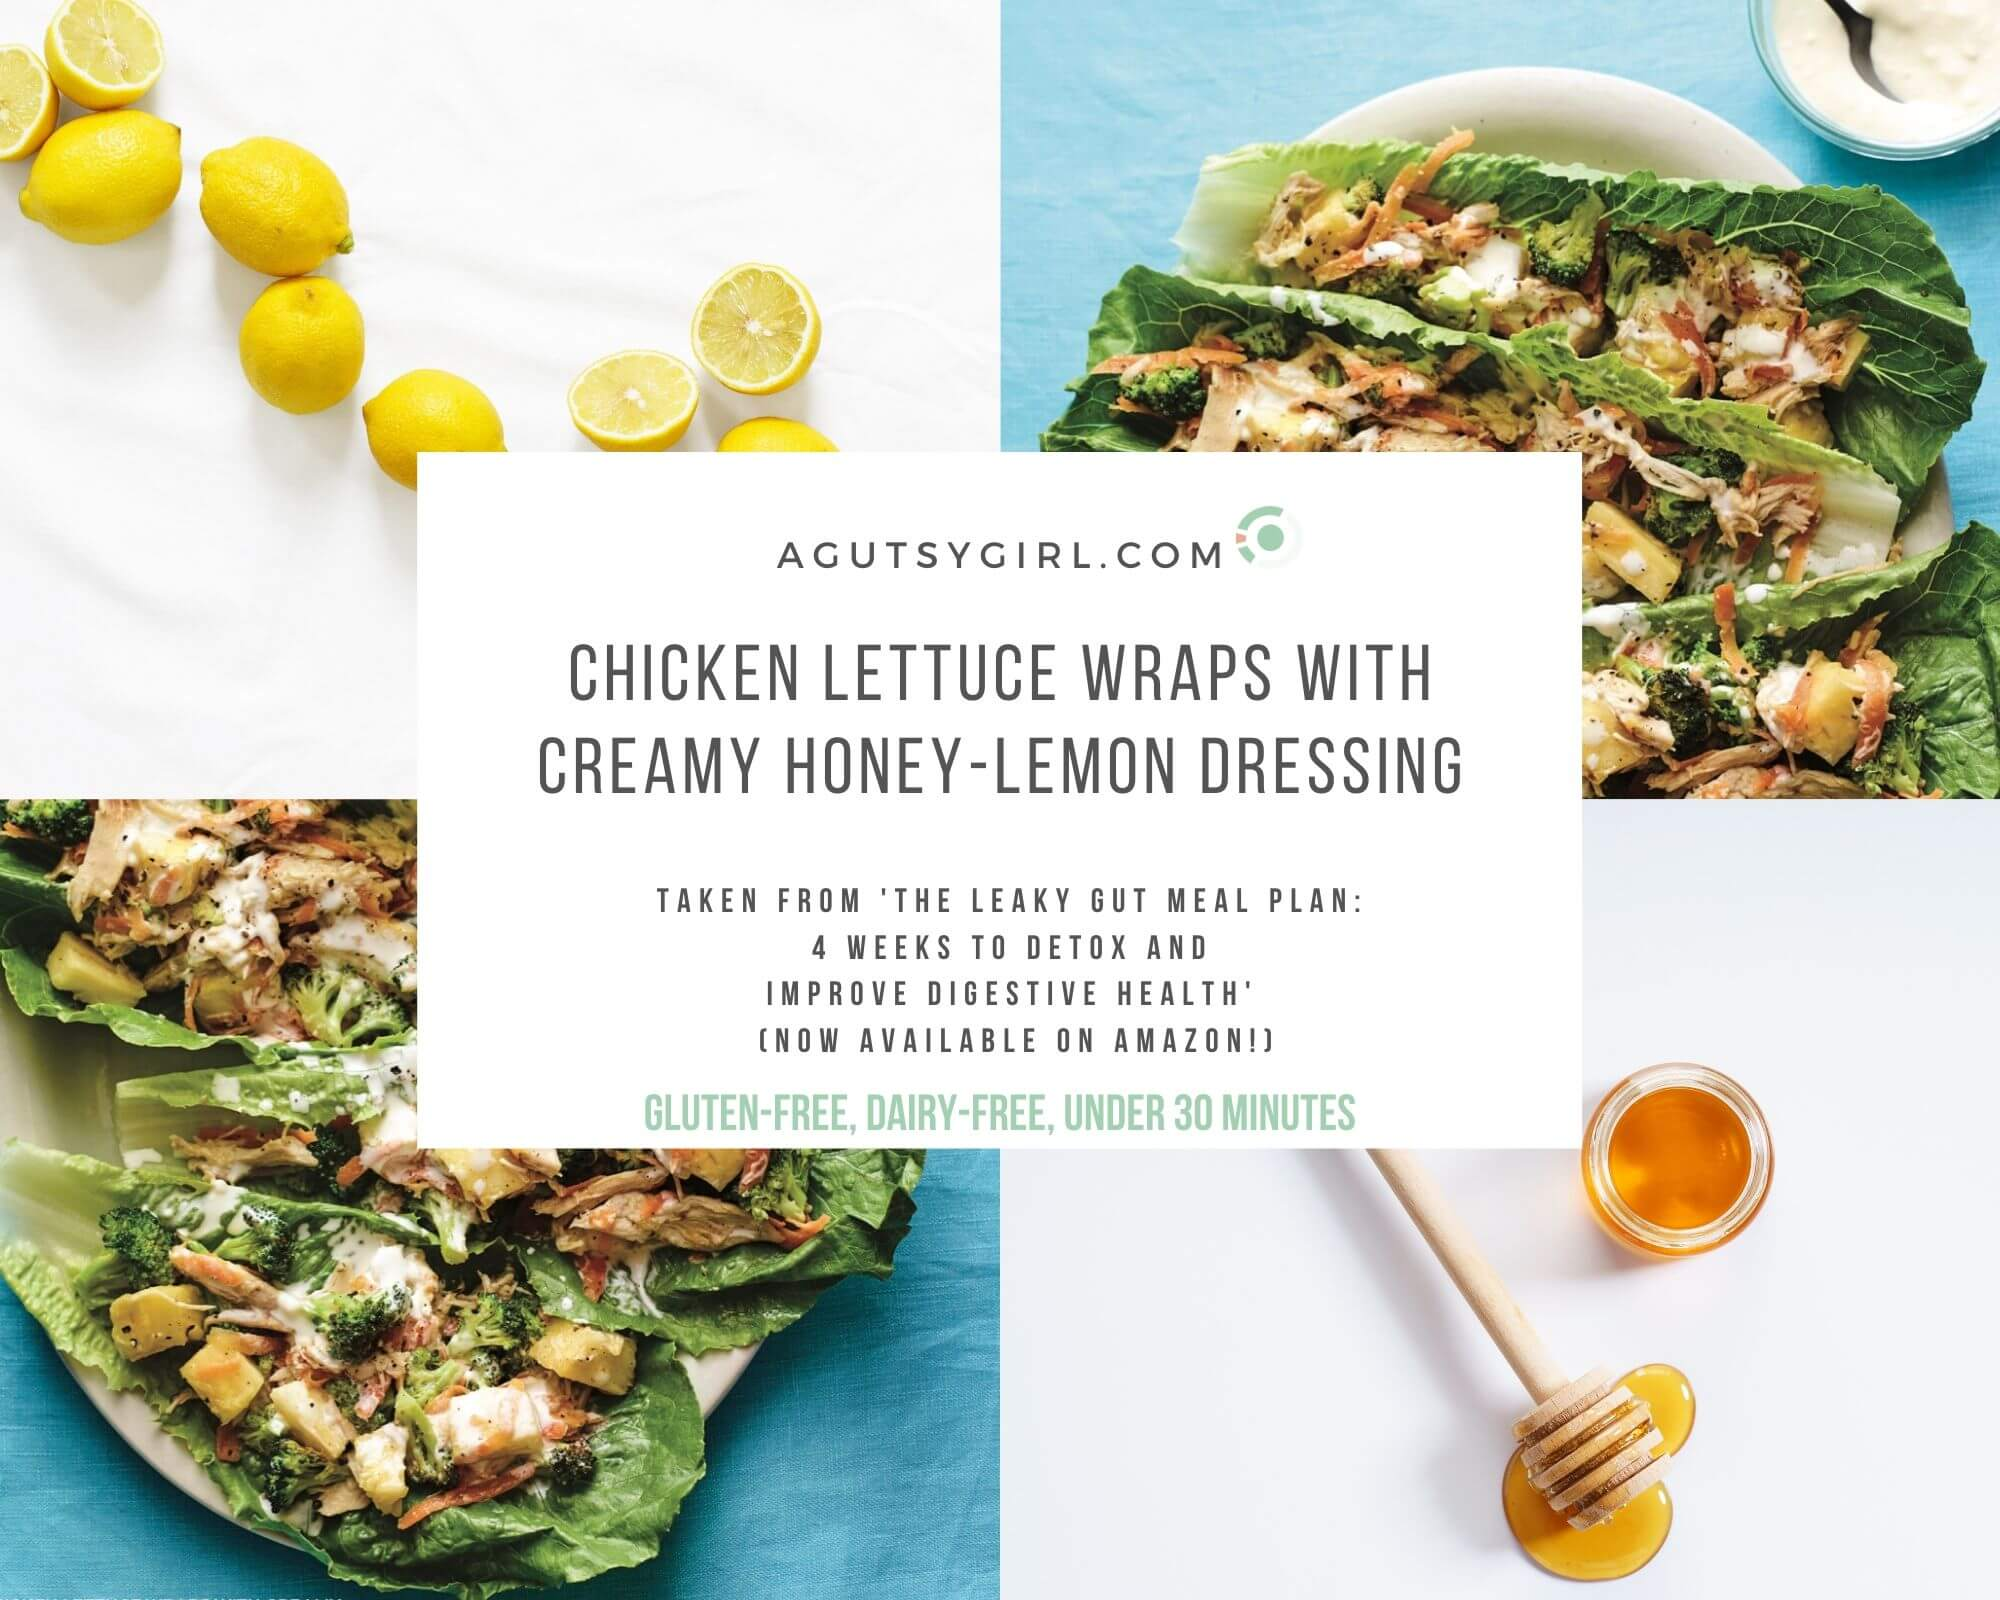 Chicken Lettuce Wraps with Creamy Honey-Lemon Dressing agutsygirl.com Callisto Leaky Gut Meal Plan book #leakygut #dairyfree #paleo #lettucewrap